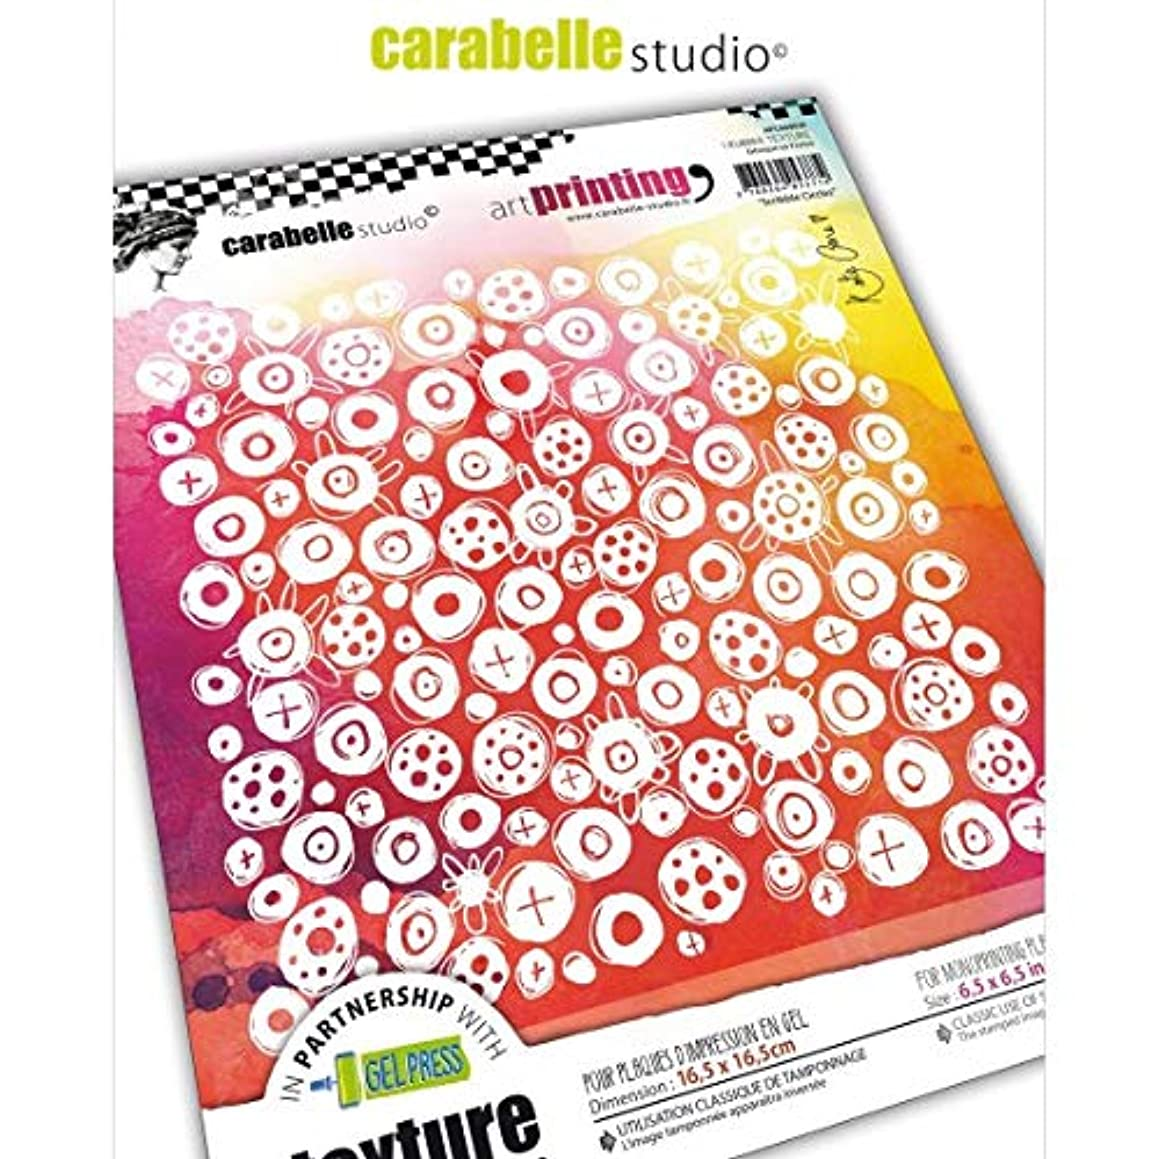 Carabelle Studios Art Printing Rubber Texture Stamp Rectangle, Scribble Circles, for Gel Monoprint Plates, 16,5 x 16,5 cm